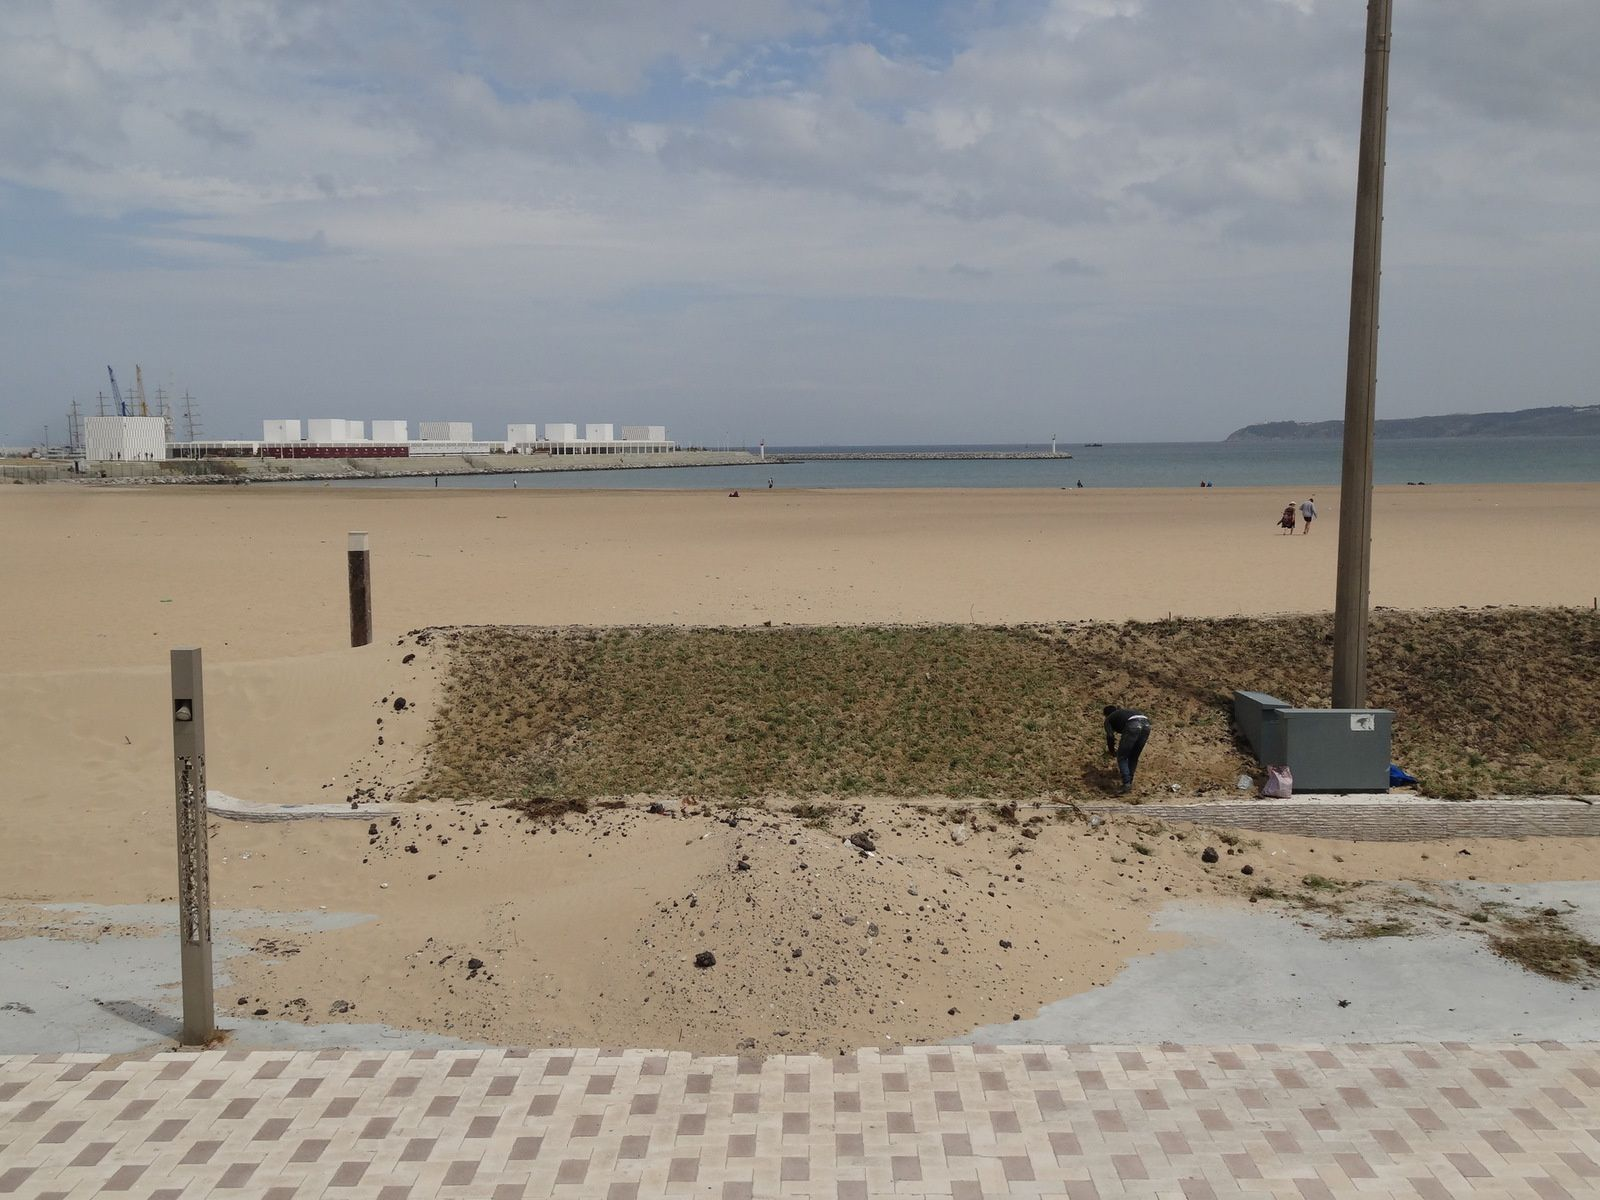 La corniche à Tanger, difficile de lutter contre l'ensablement (3 photos)